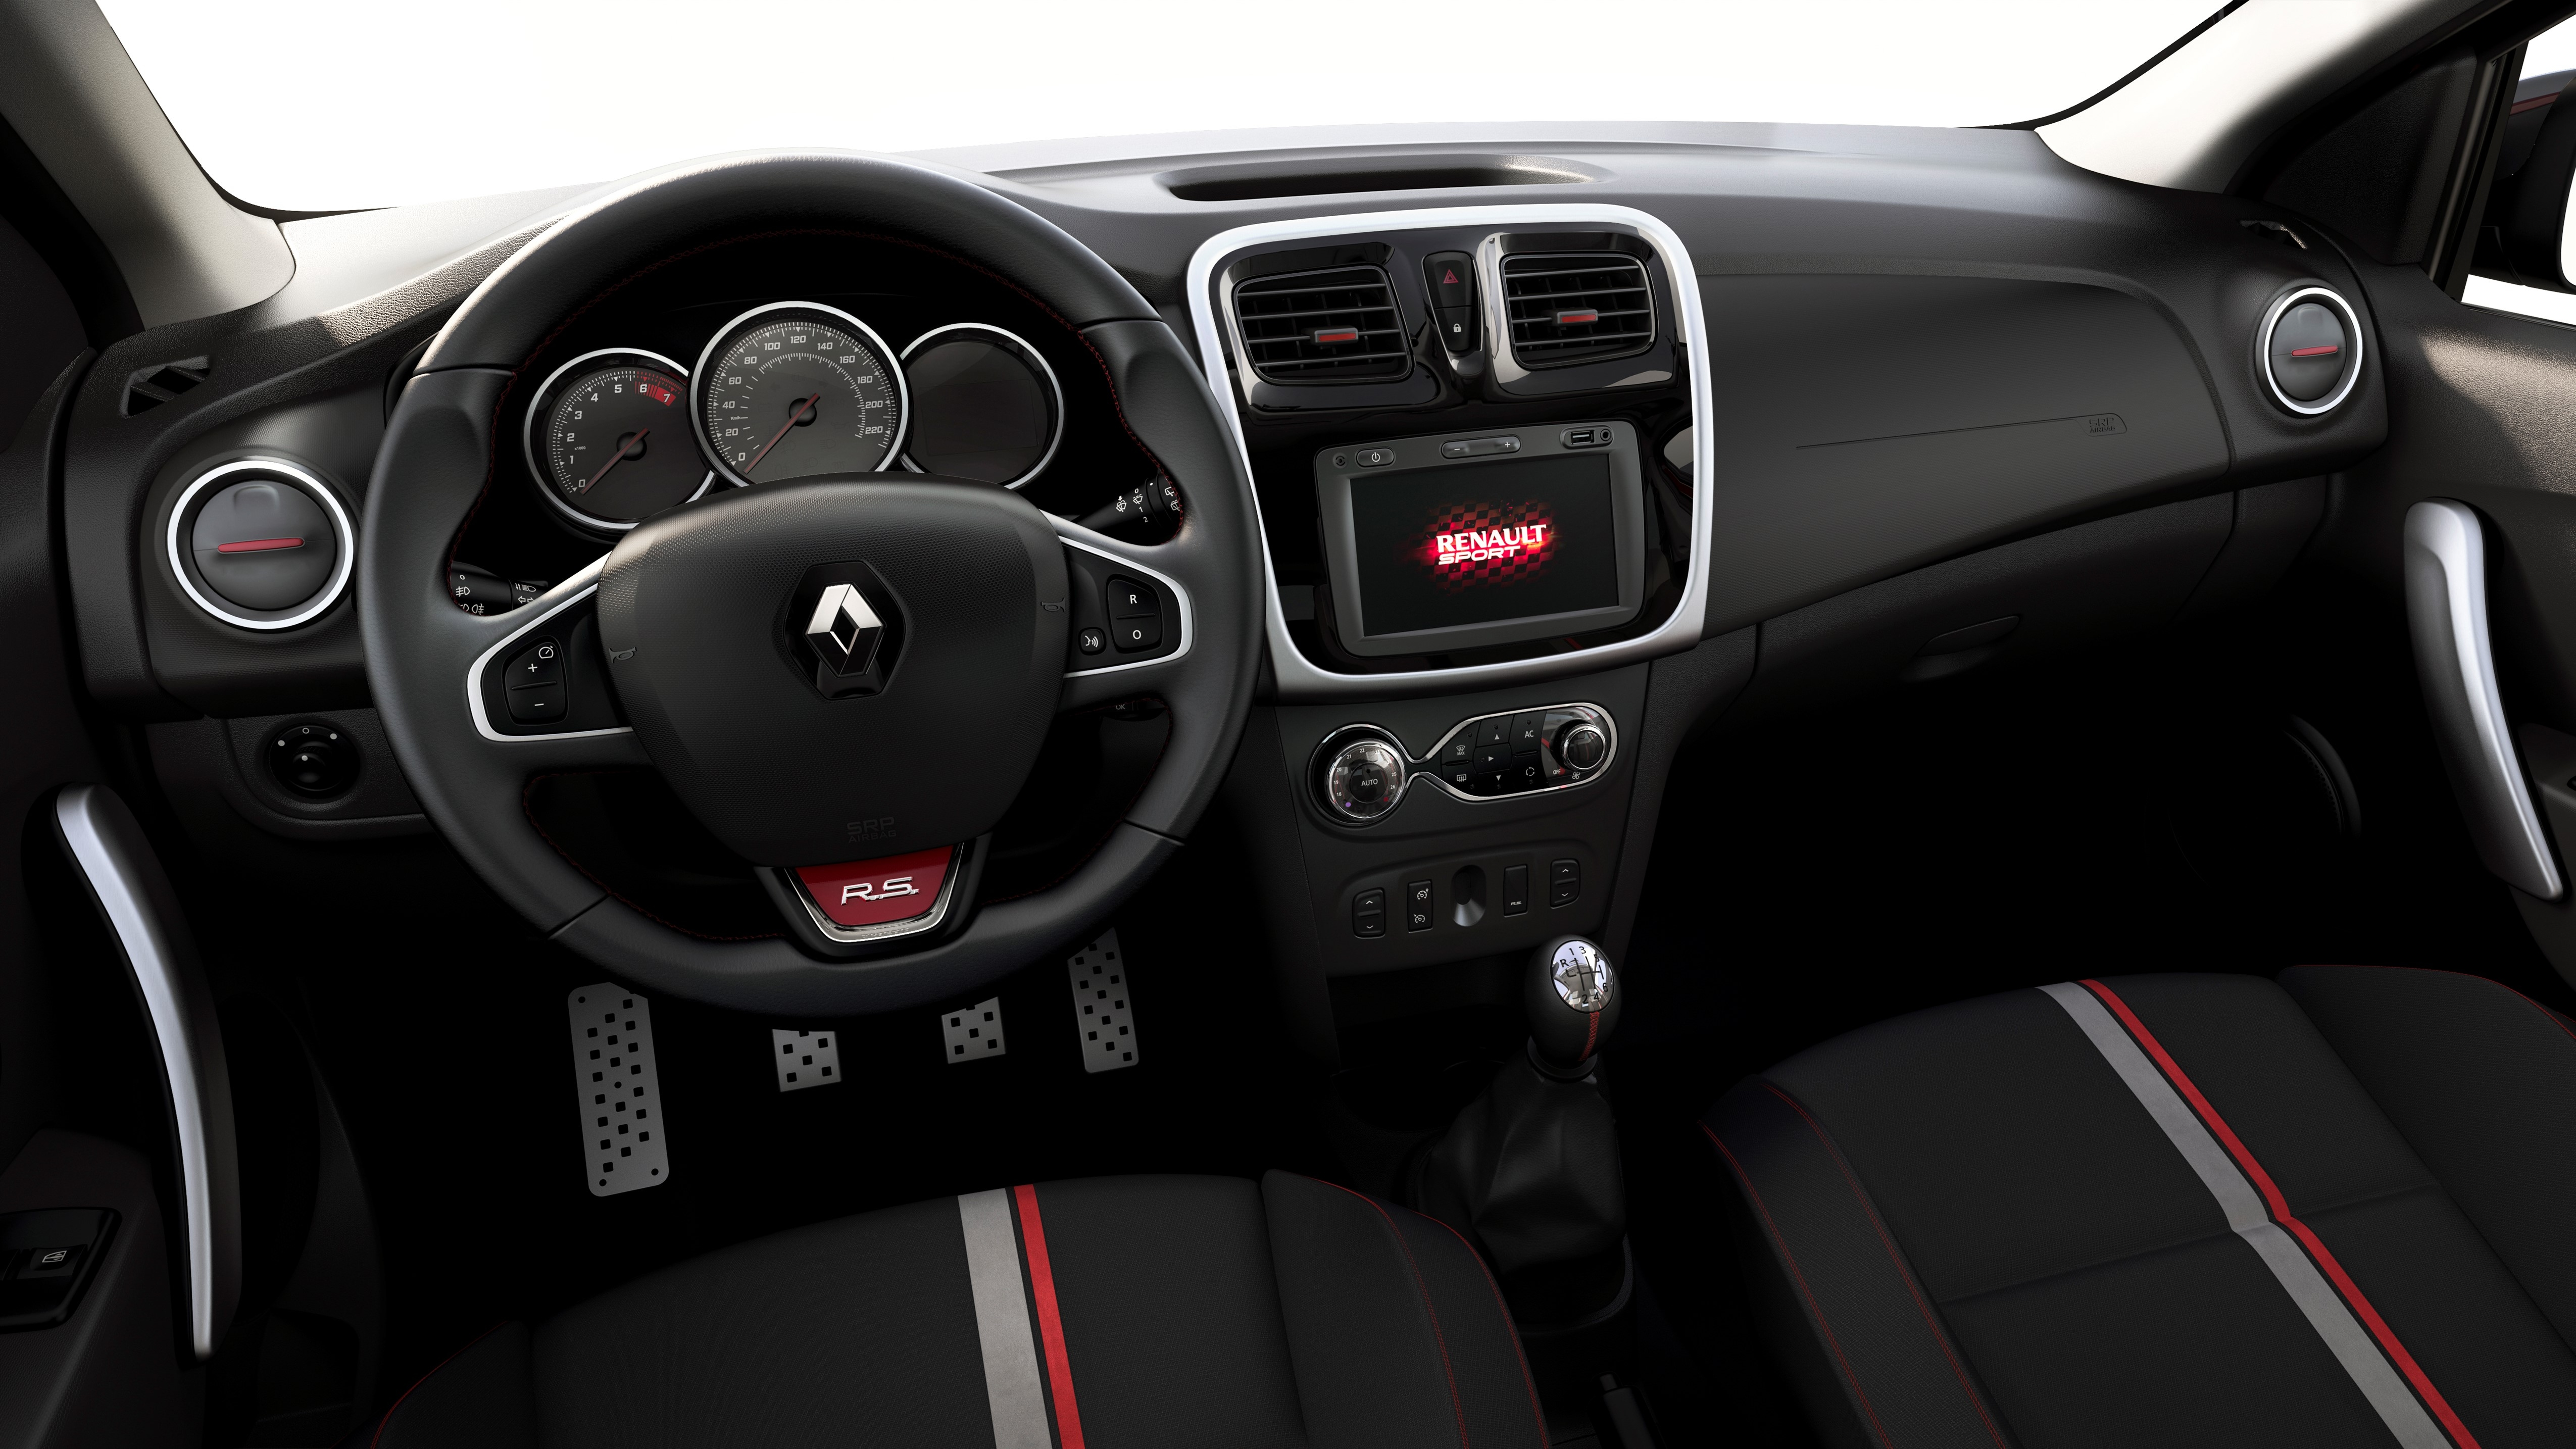 Sandero r s la sportive low cost enfin l essai for Duster interieur